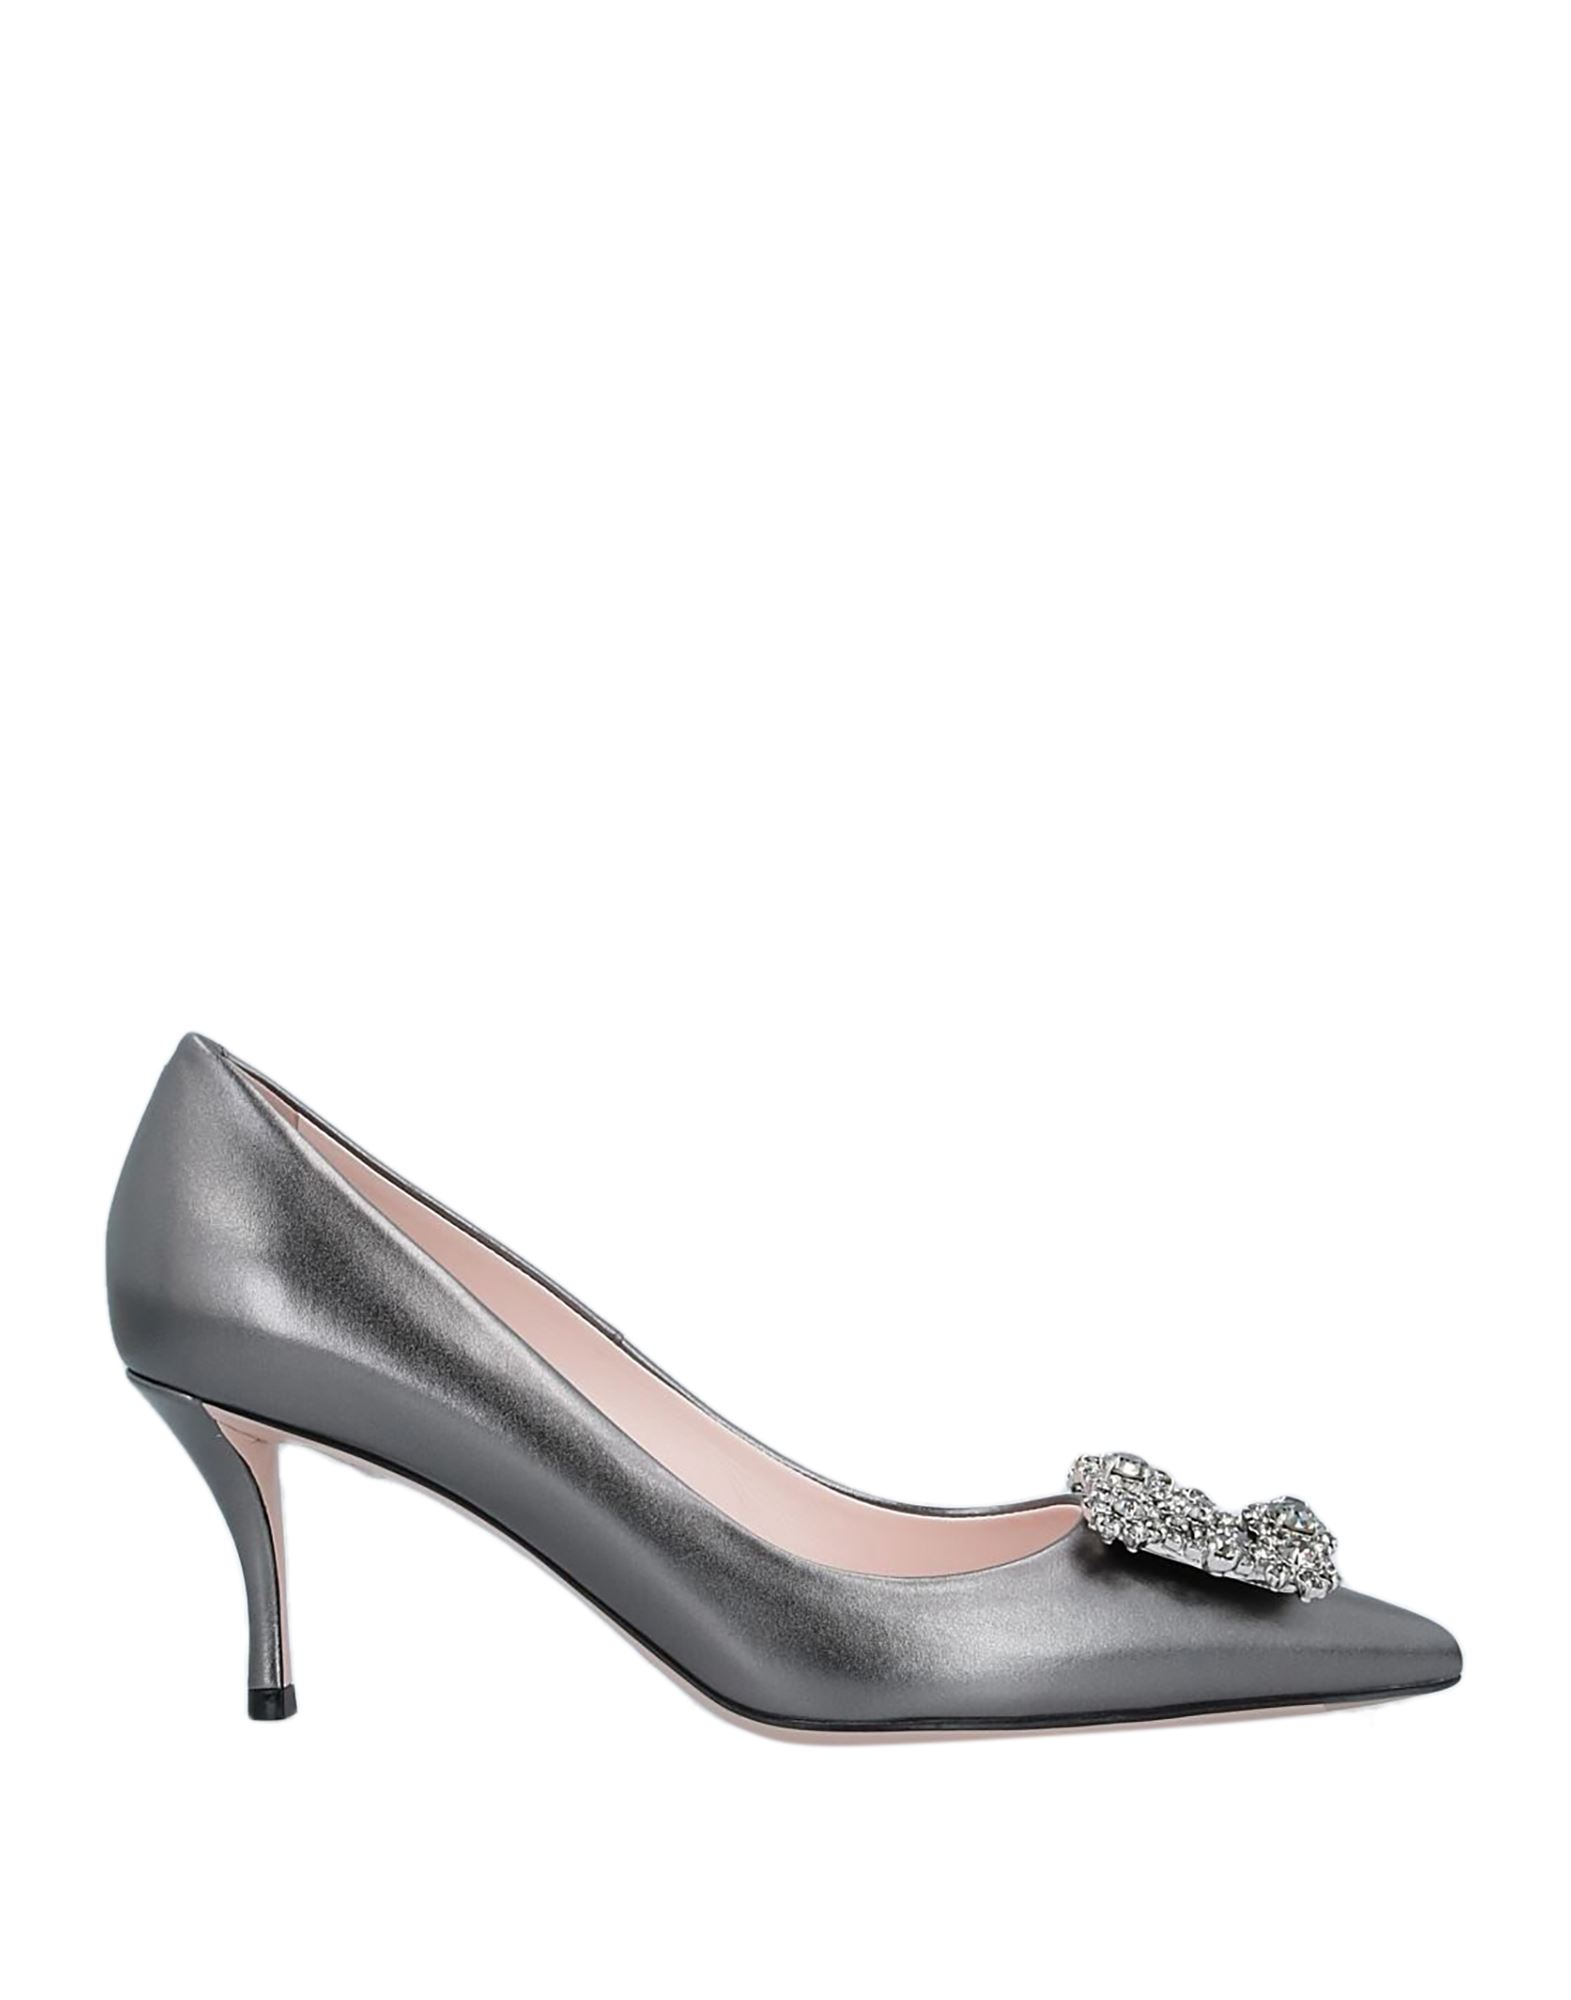 ROGER VIVIER Pumps. leather, laminated effect, rhinestones, solid color, narrow toeline, spike heel, covered heel, leather lining, leather sole, contains non-textile parts of animal origin. Soft Leather